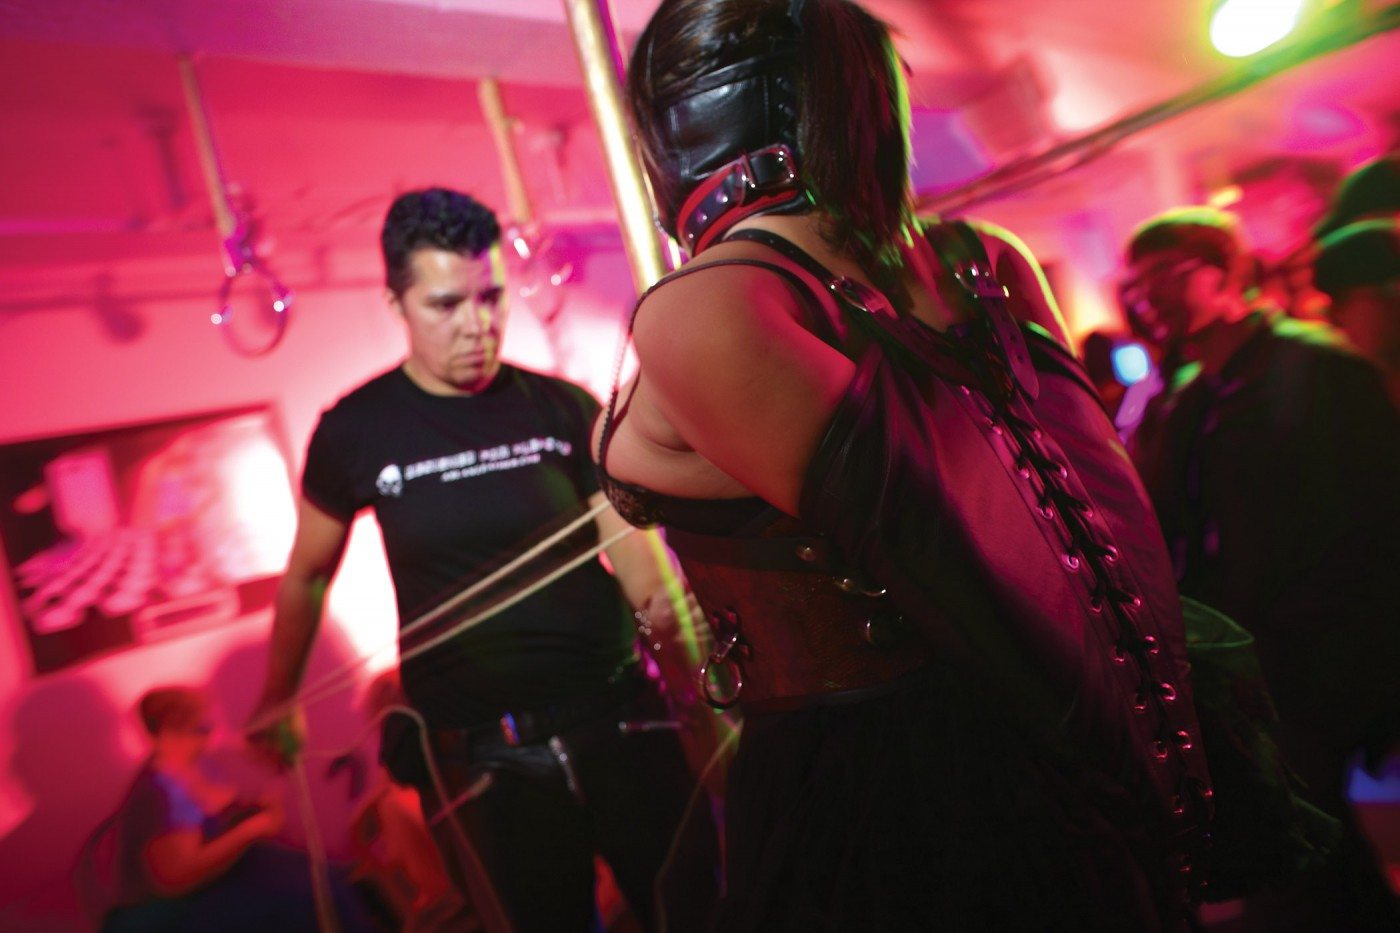 Geoff George, </span><span><em>Carey Gray and partner at Morpheous Bondage Extravaganza</em>, </span><span>2010 Marc S. Bonham Centre for Sexual Diversity Studies Sexual Representation Collection